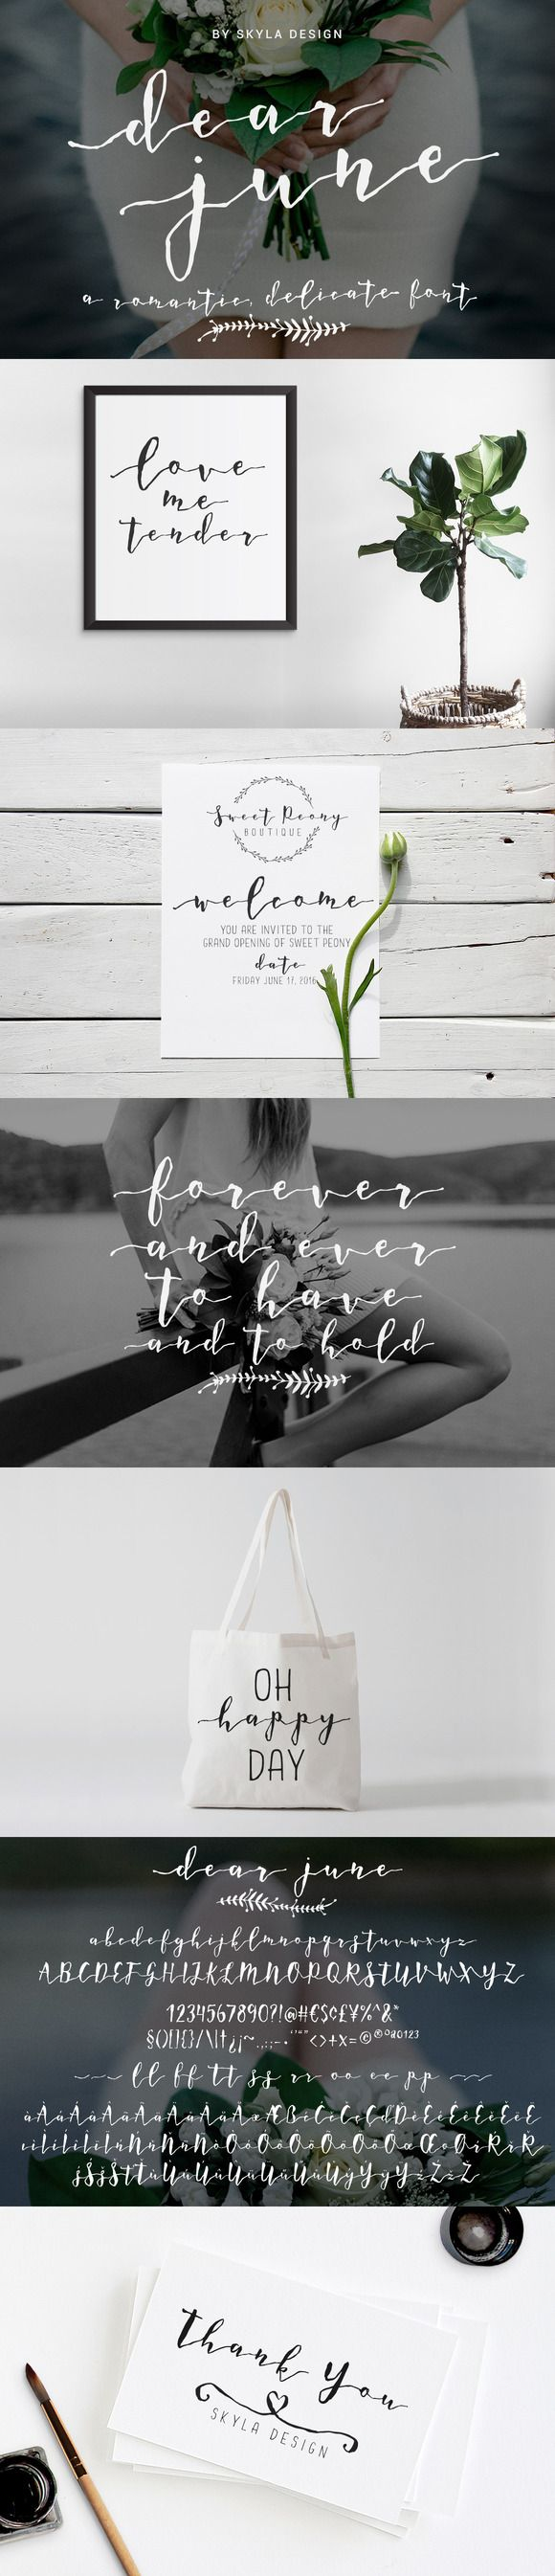 A Romantic font - Dear June by skyladesign on @creativemarket